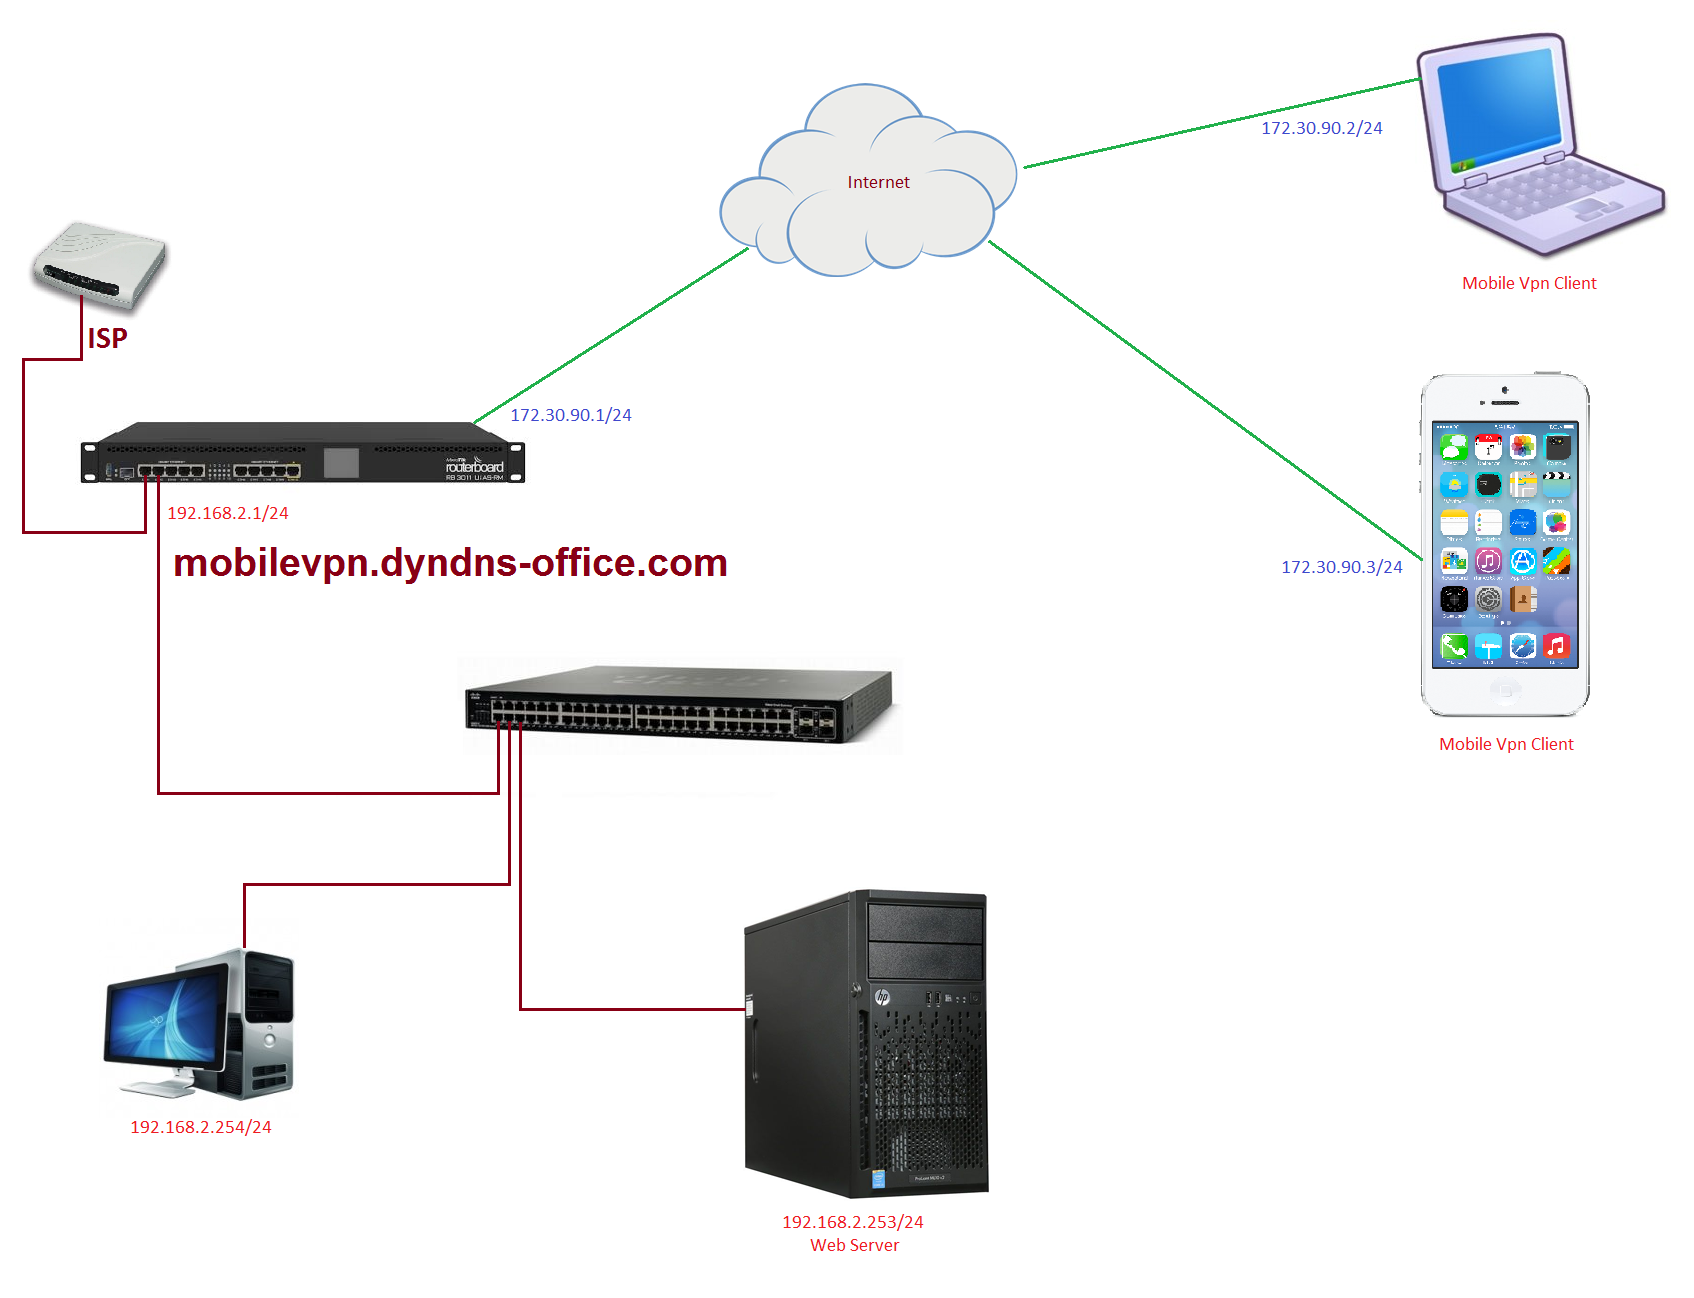 Amazon Vps Vpn Wireless Diagram Config System Settings Set Dhcp Proxy Enable Server Ip Address Dhcp6 End Setting The Ipsec Phase One To